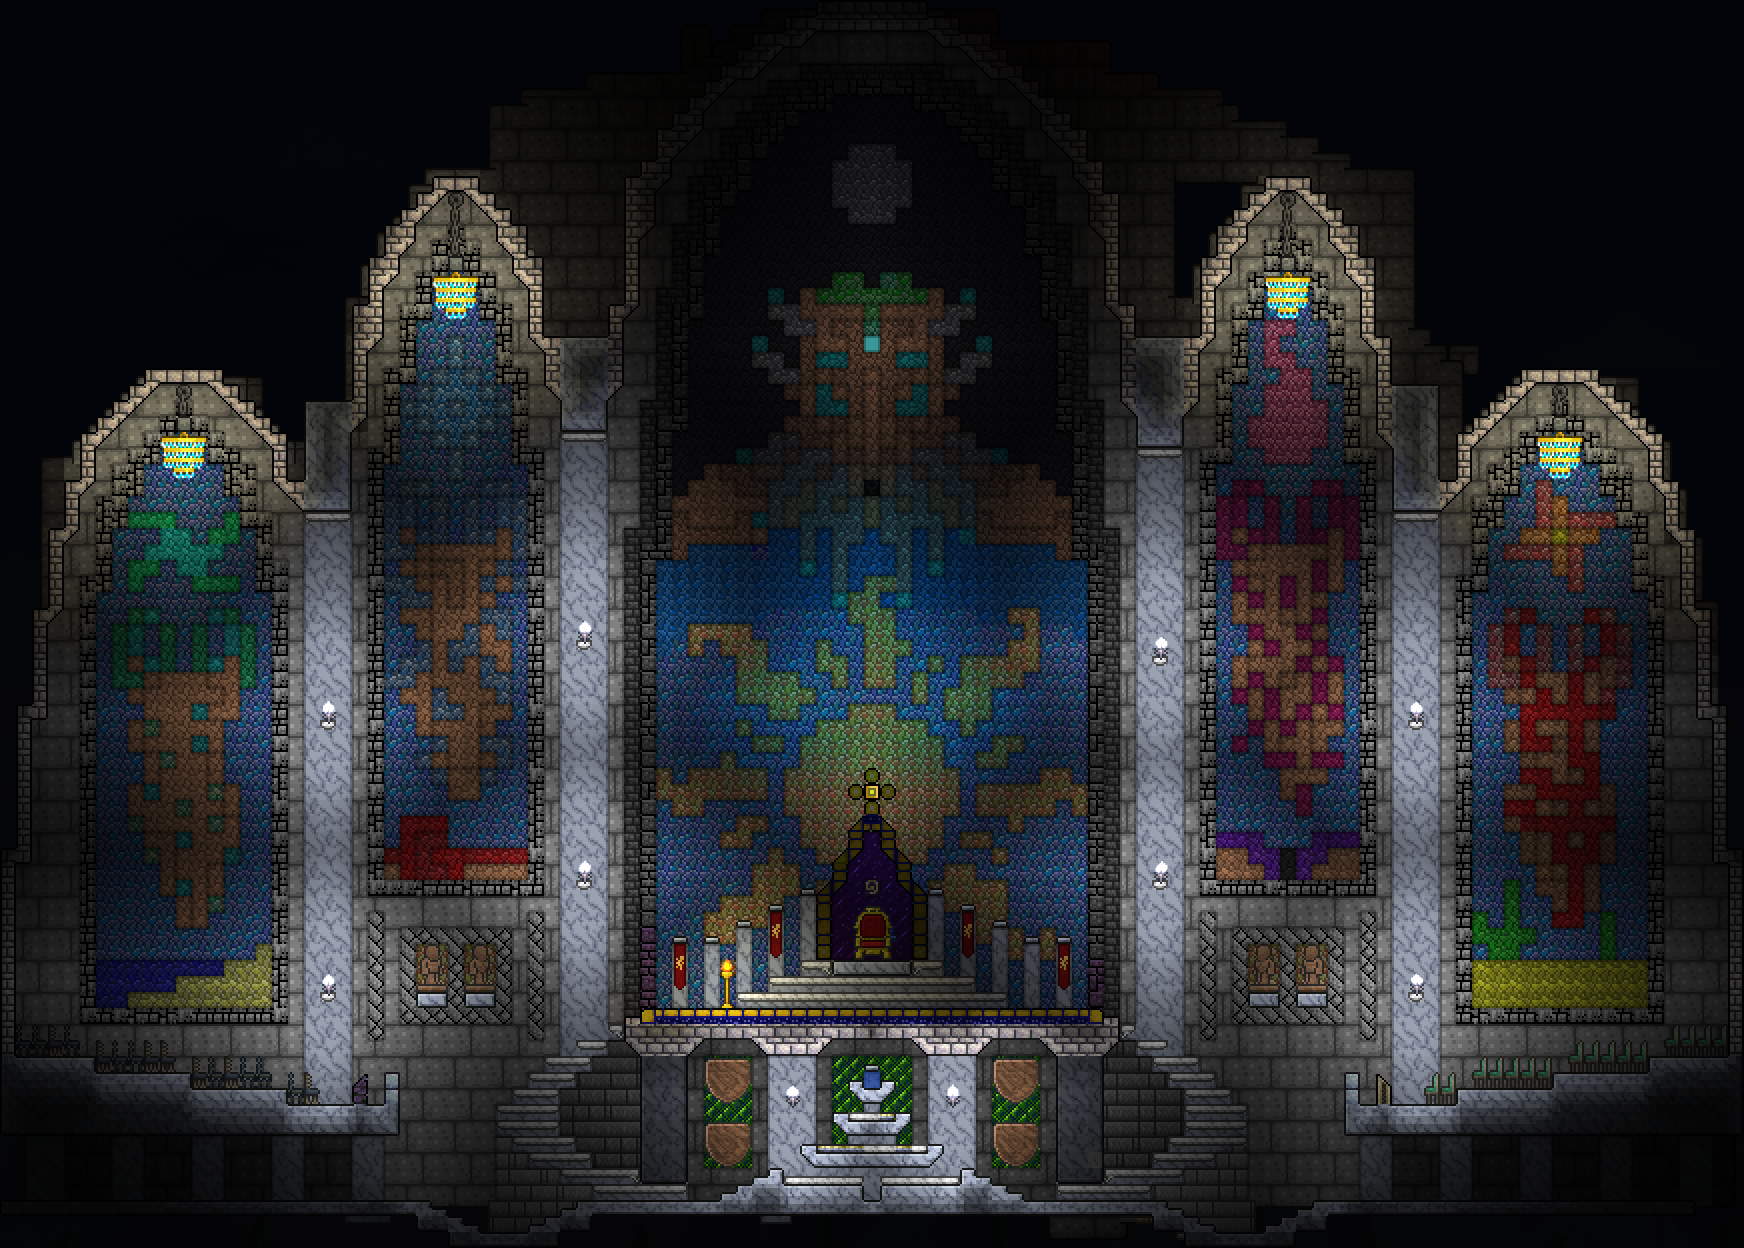 Terraria Amazing Throne Room With Moon Lord And Pillars